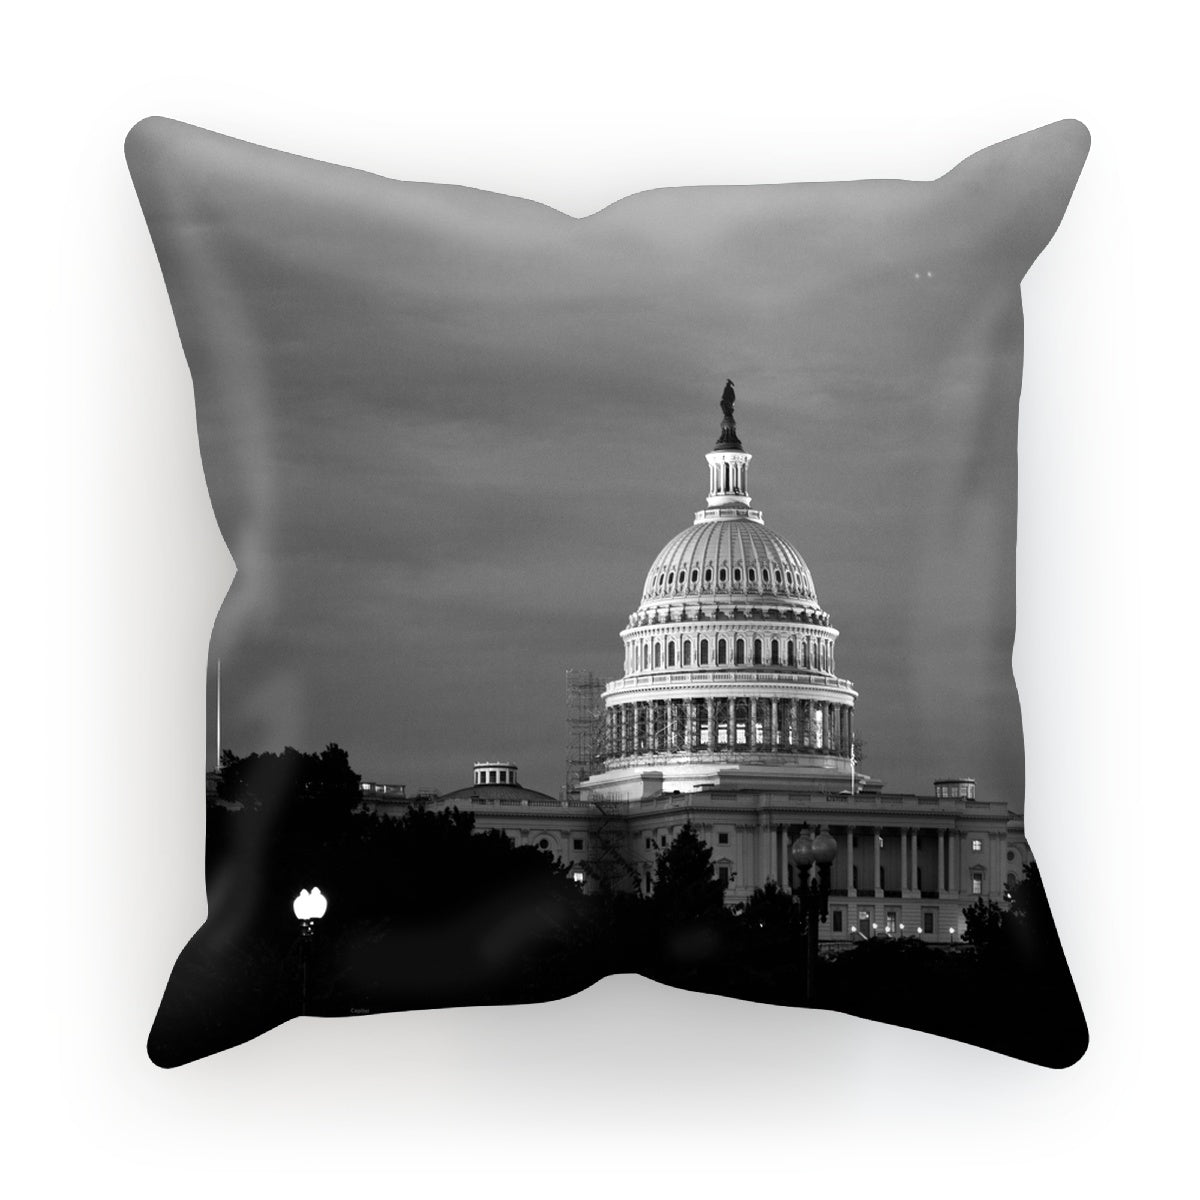 Capitol-01 Cushion